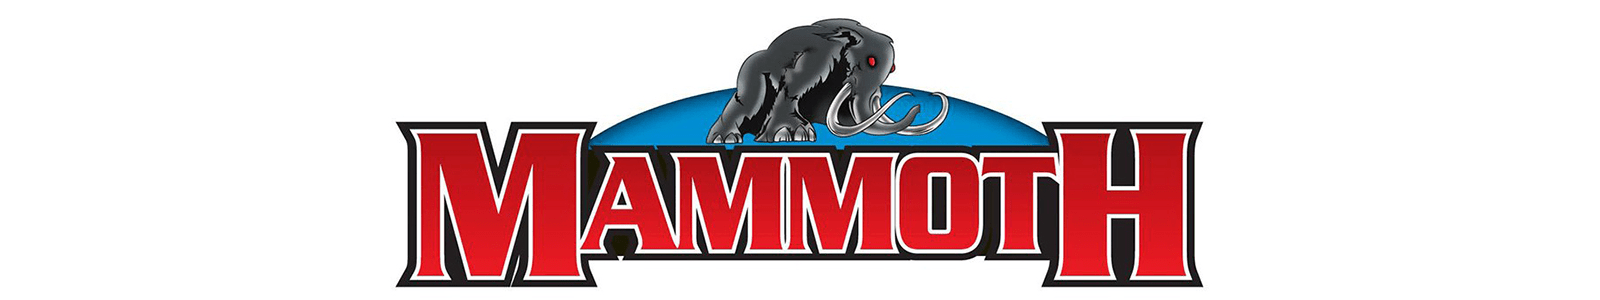 Brands - Mammoth Supplements